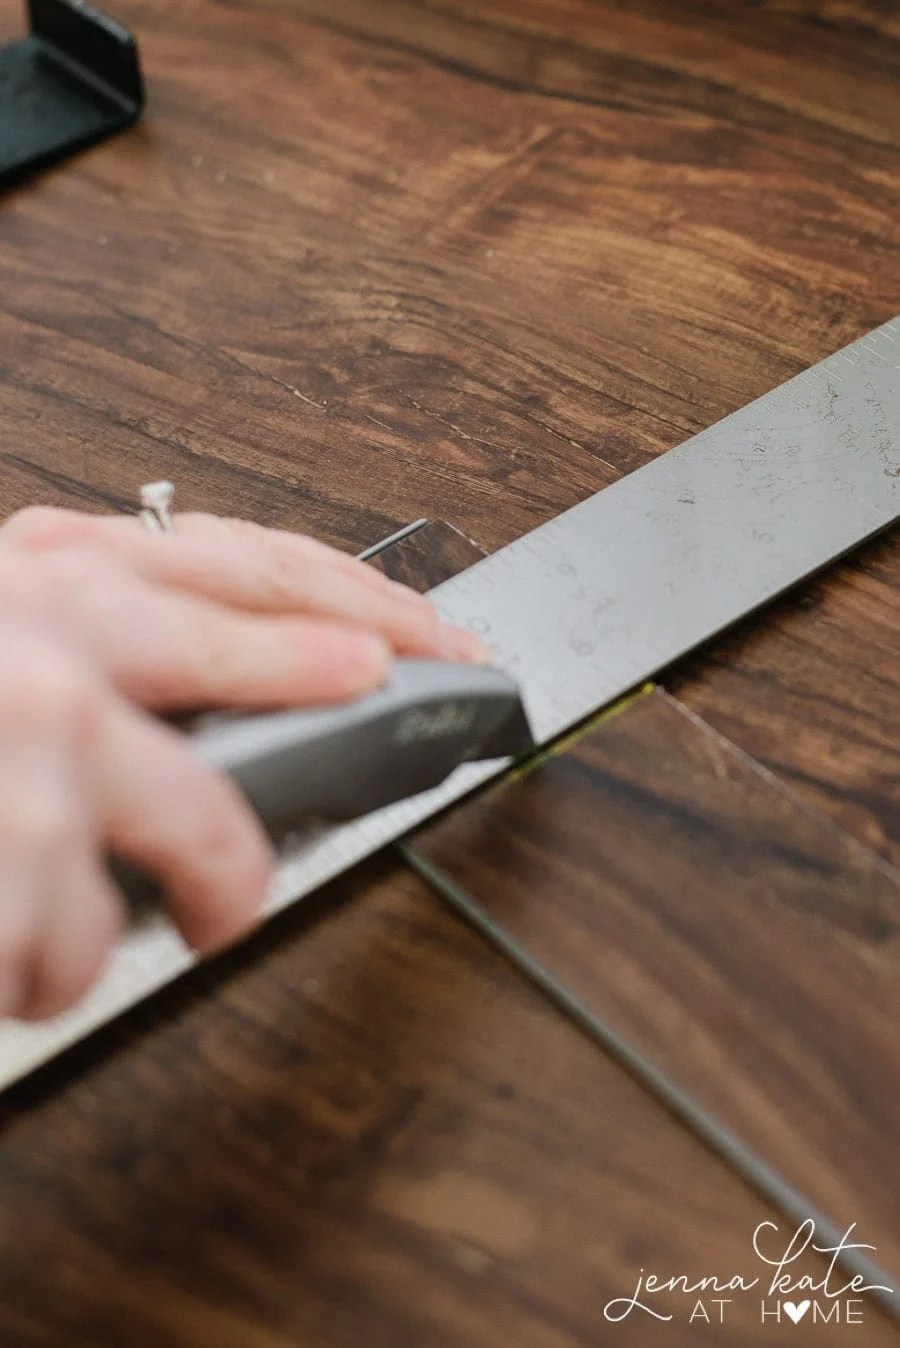 Using a box cutter to cut vinyl planks